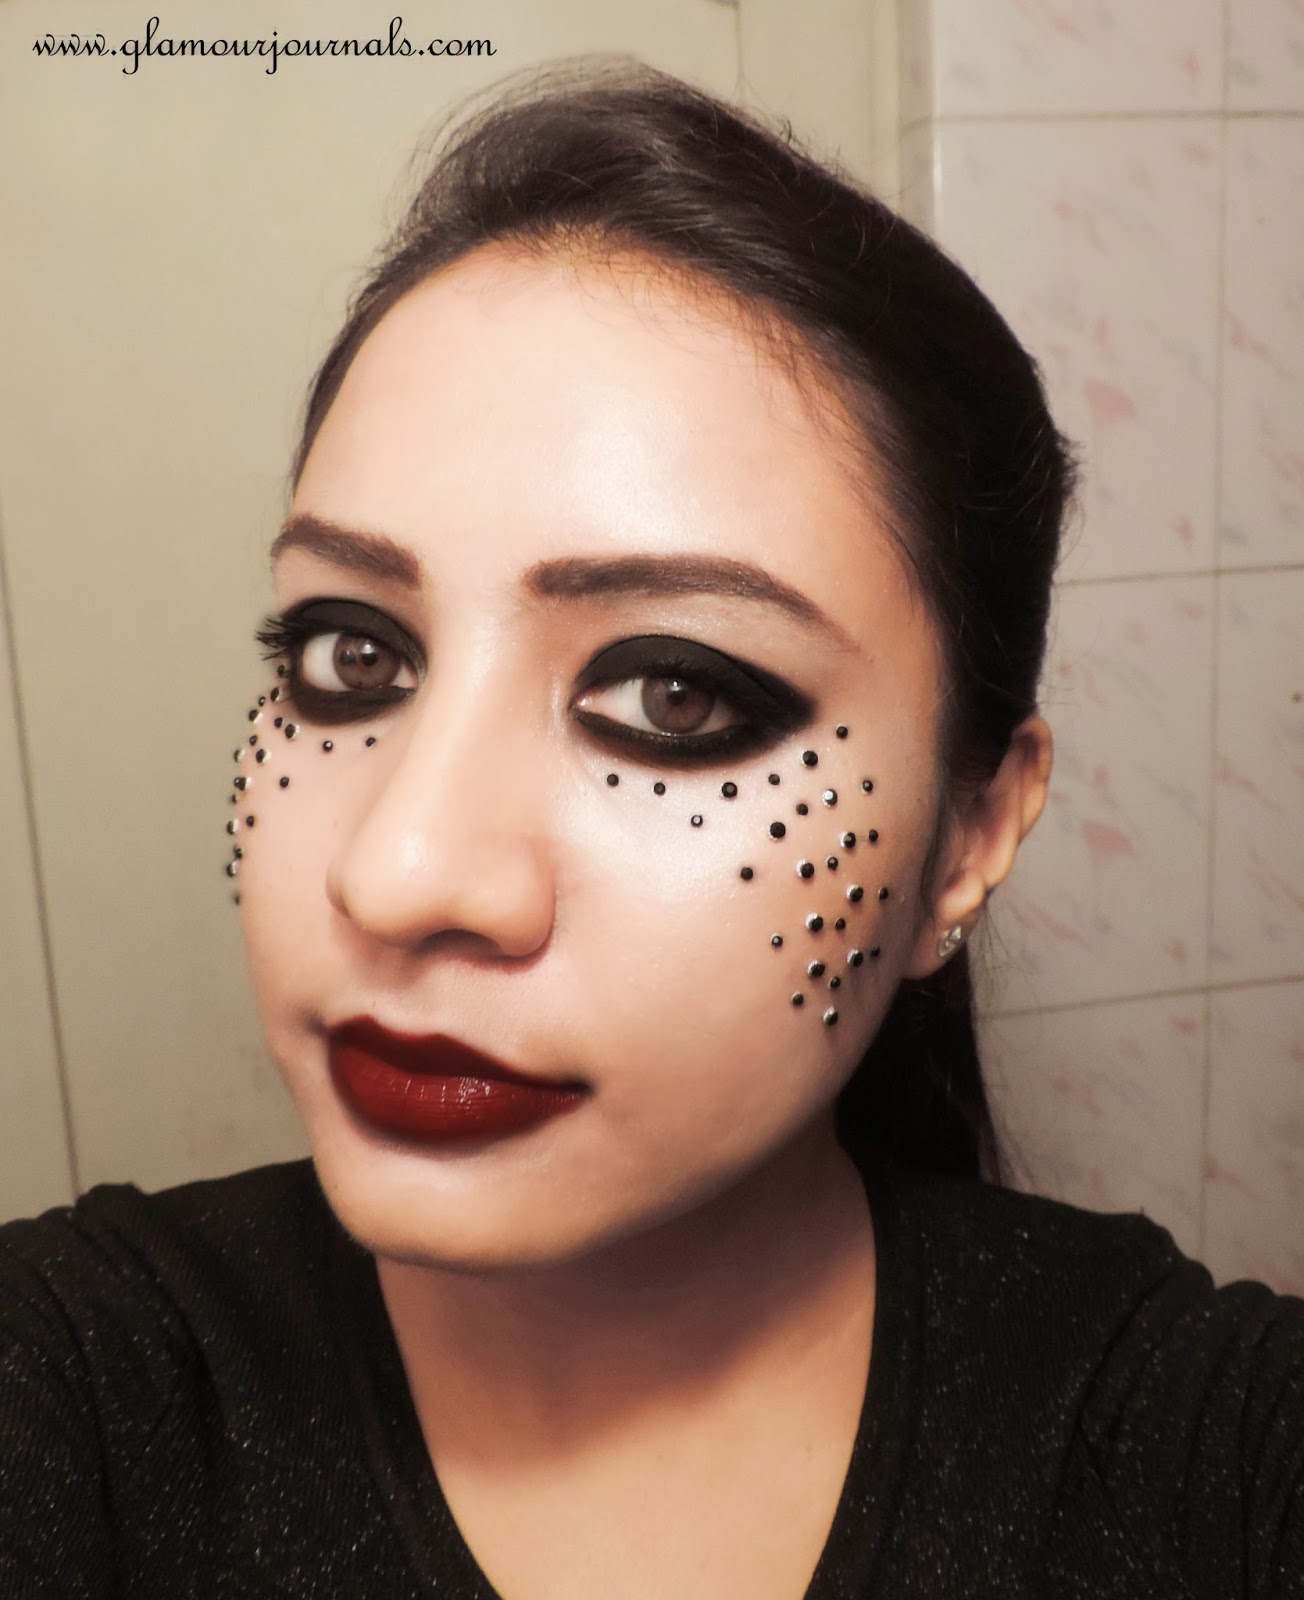 Dark Princess | Halloween Makeup & Outfit Tutorial | Glamour Journals